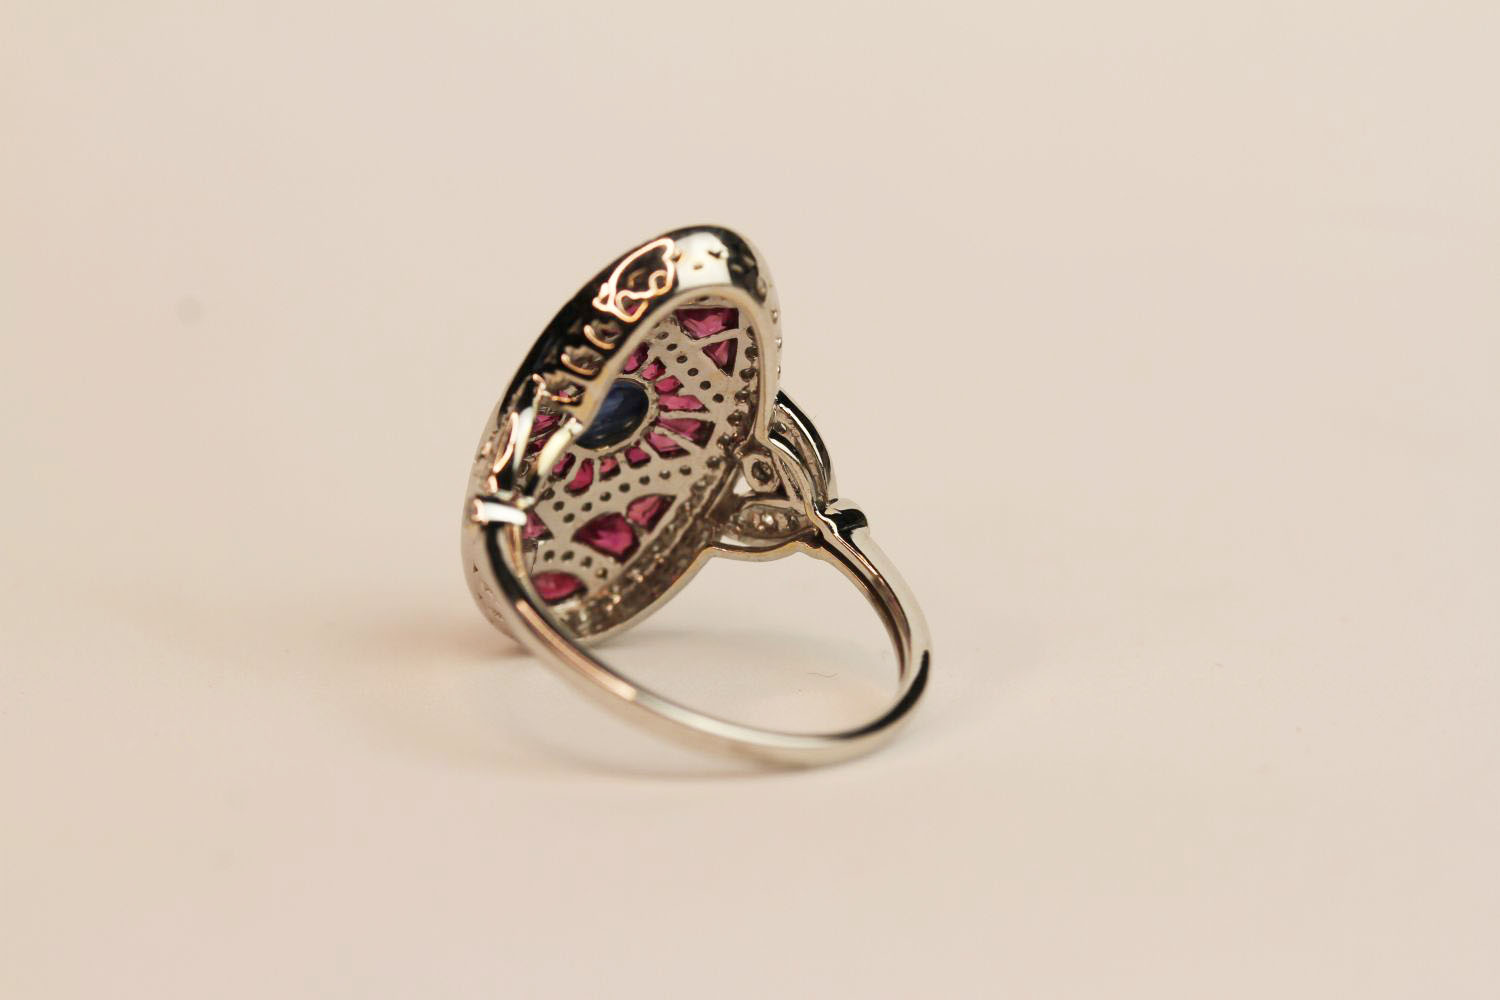 18ct white gold and platinum large Art Deco-style ruby and diamond ring with cabochon sapphire, ring - Image 3 of 3